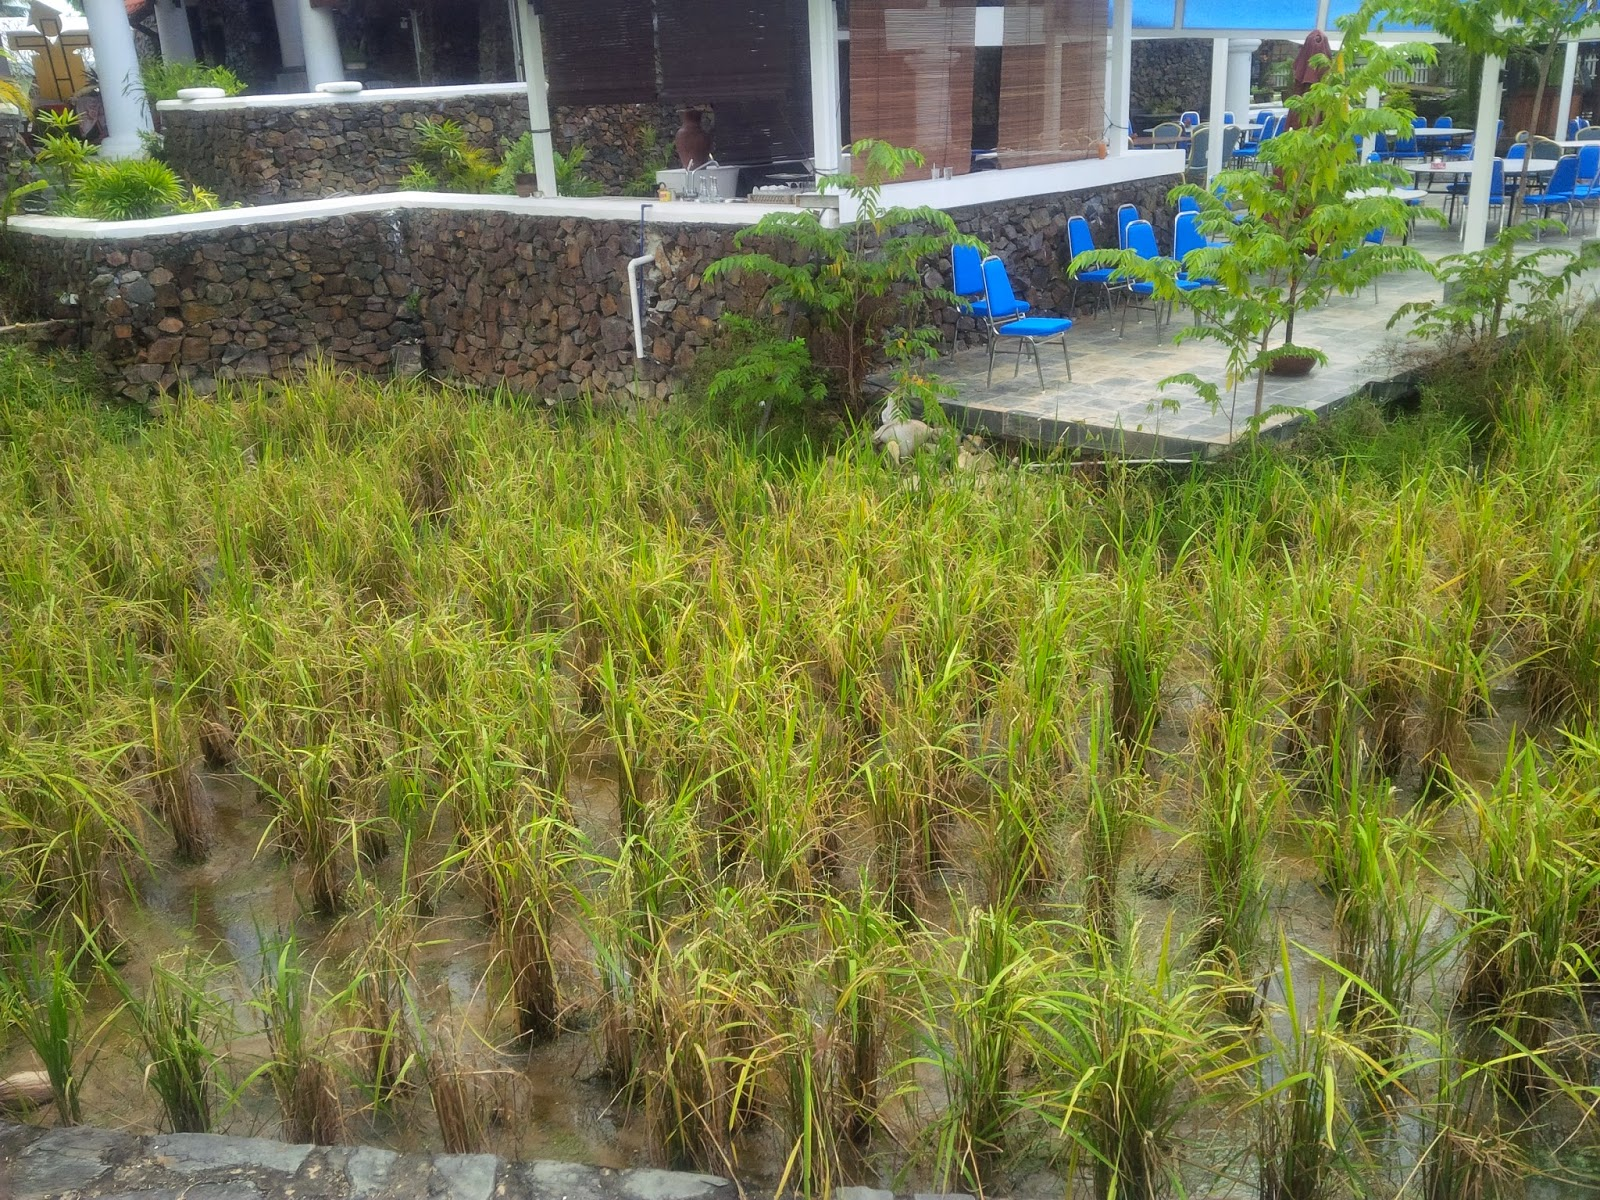 agroturism, beach, gardening, how to grow rice, Laman Padi, Langkawi, Museum, pantai cenang, Rice Garden, tourism, travel